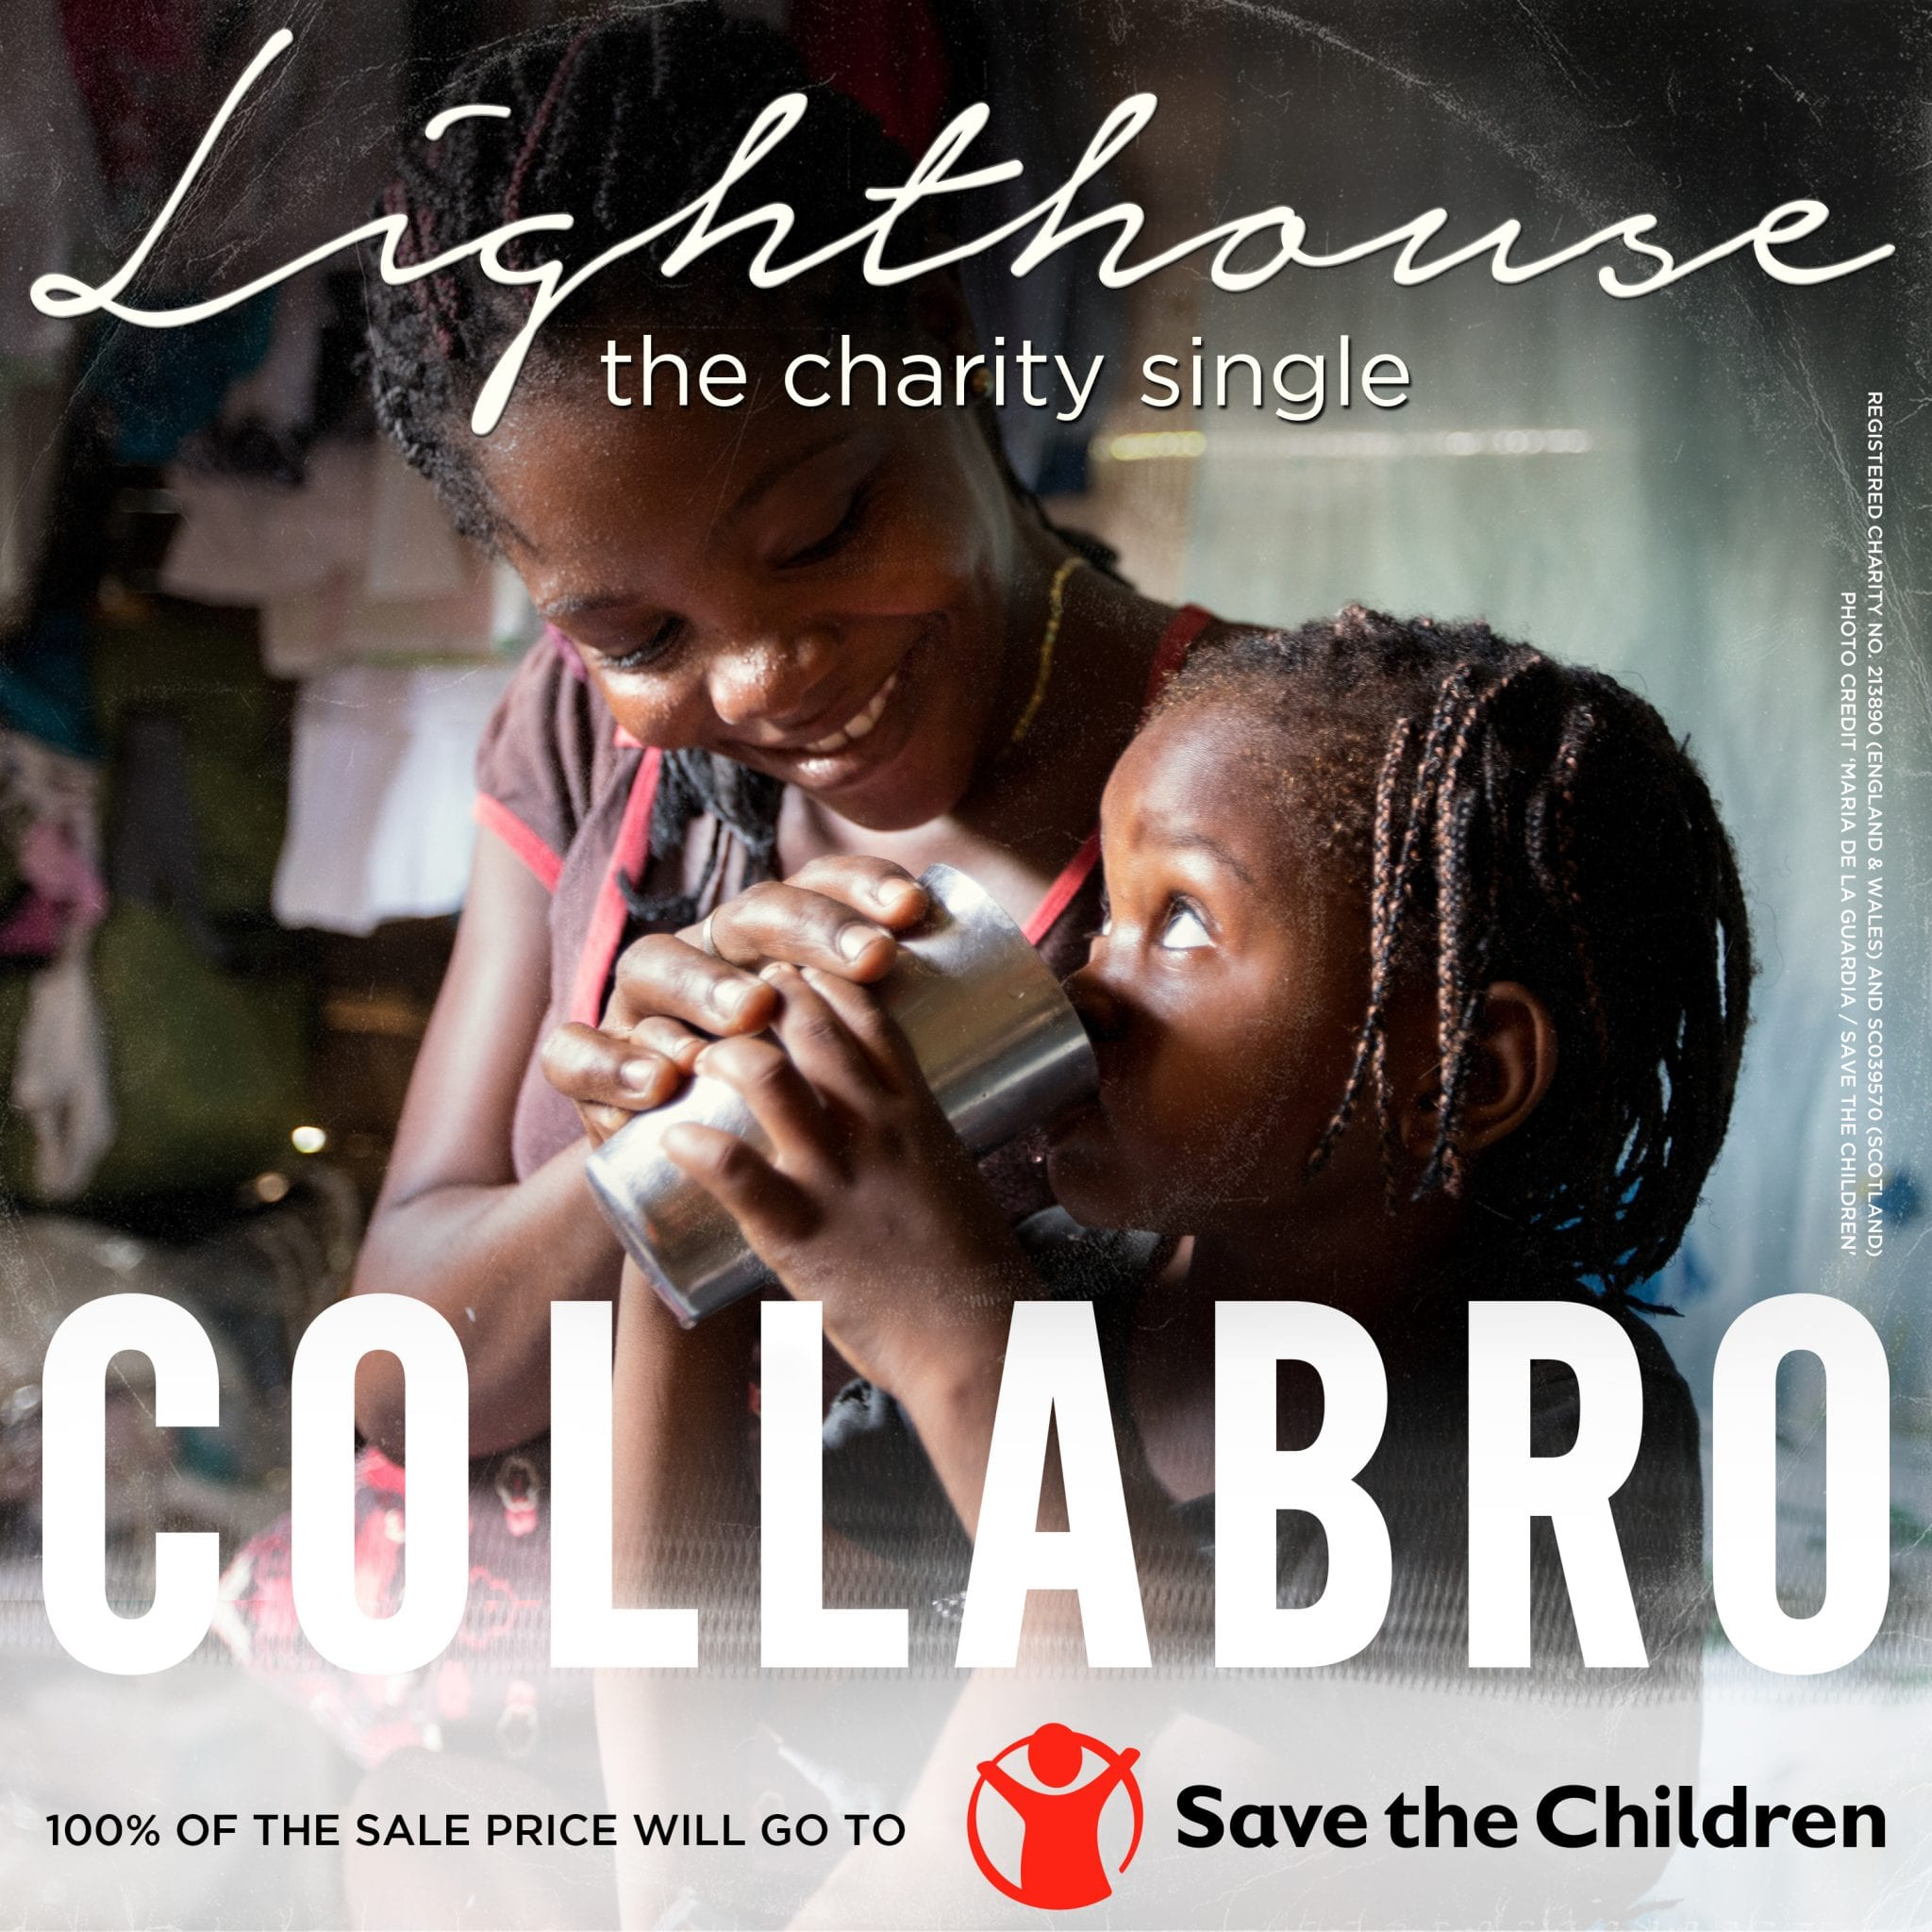 COLLABRO RELEASE FIRST EVER SINGLE 'LIGHTHOUSE' IN AID OF SAVE THE CHILDREN FUND